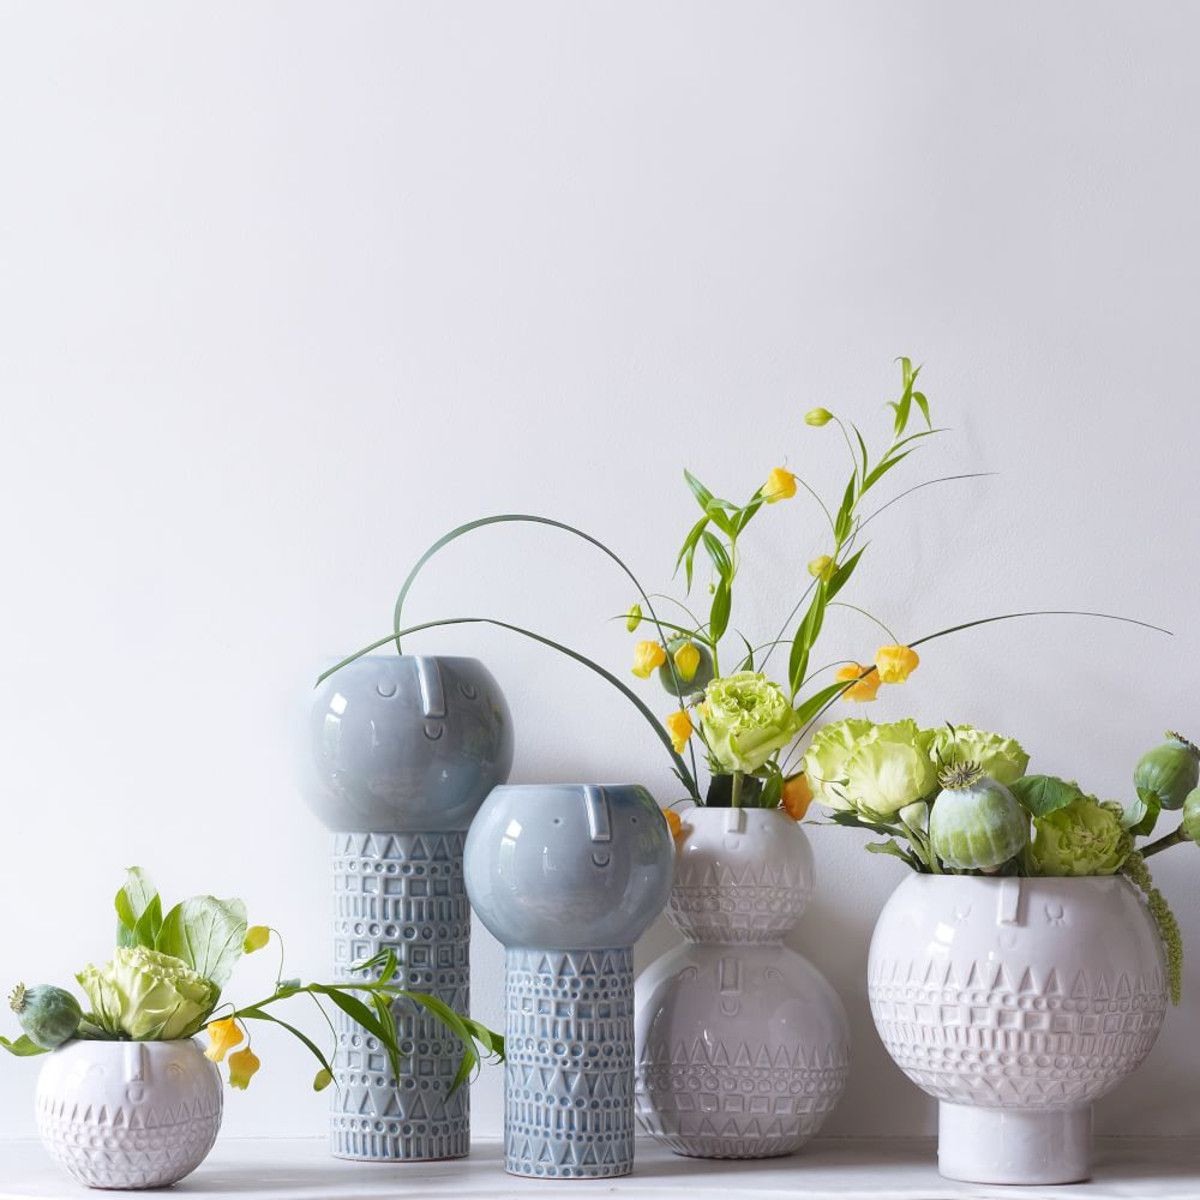 west elm flower vase of atelier stella vases nice things pinterest atelier mansion pertaining to atelier stella vases a· west elmfor